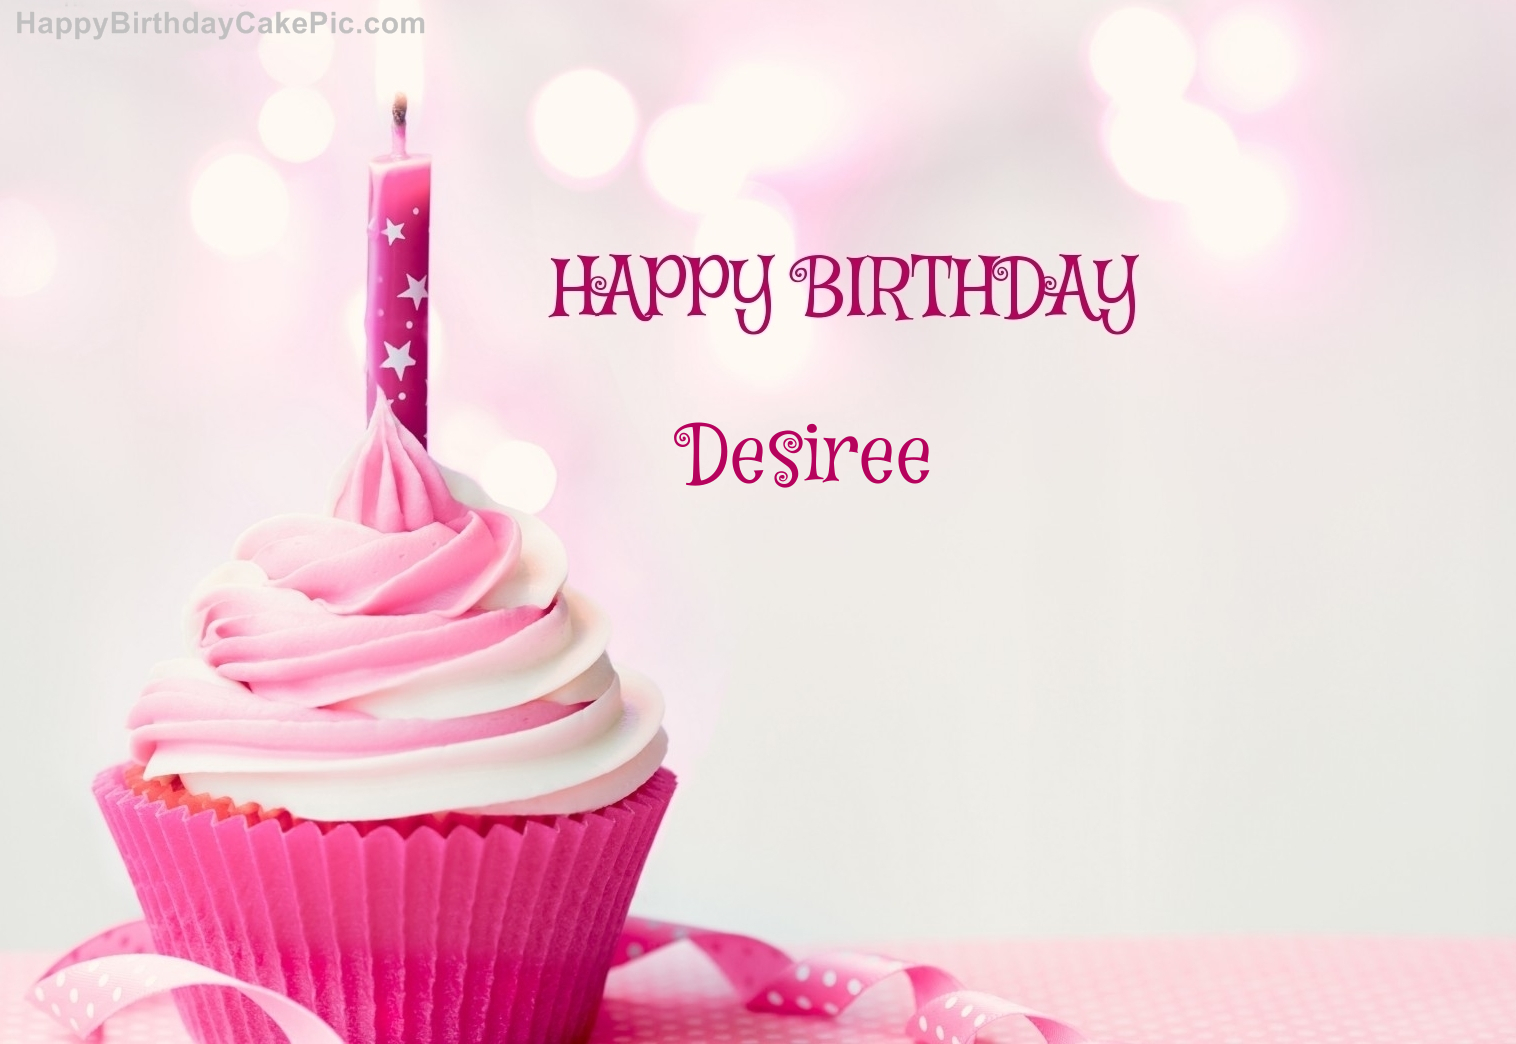 Happy Birthday Cupcake Candle Pink Cake For Desiree